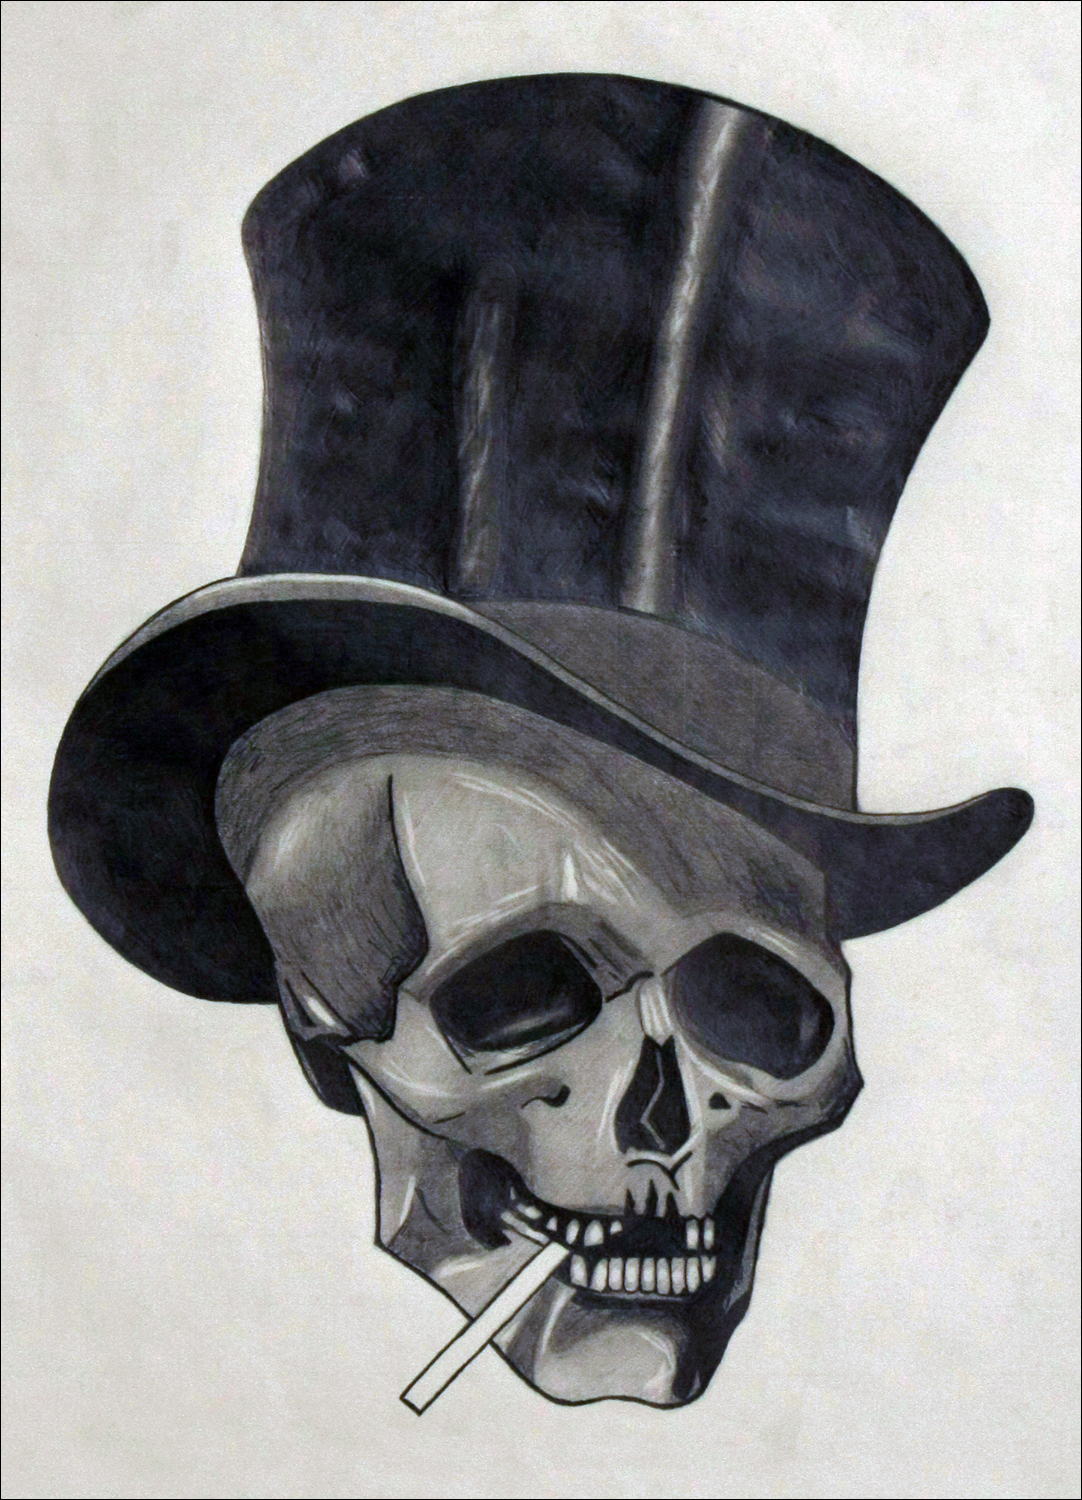 Skull with Cigarette (2010)